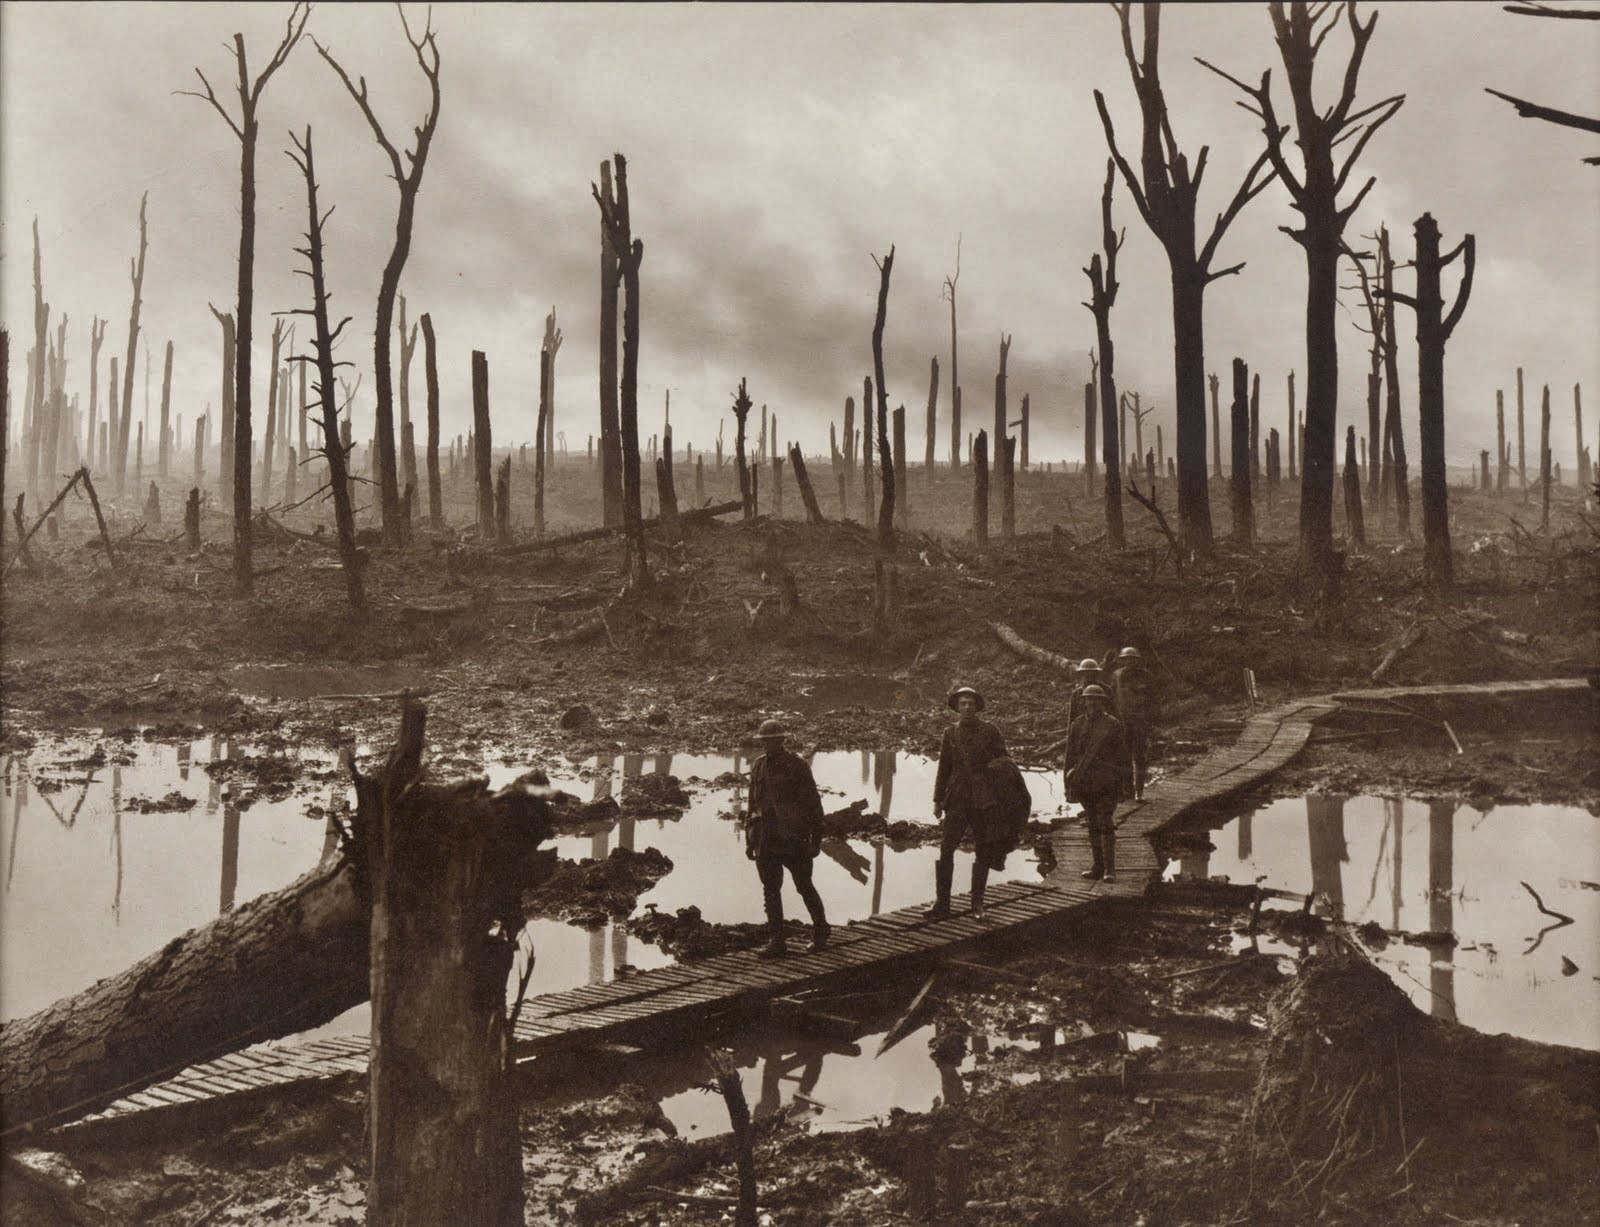 Australian Soldiers, Chateau Wood, Ypres, Belgium, 1917